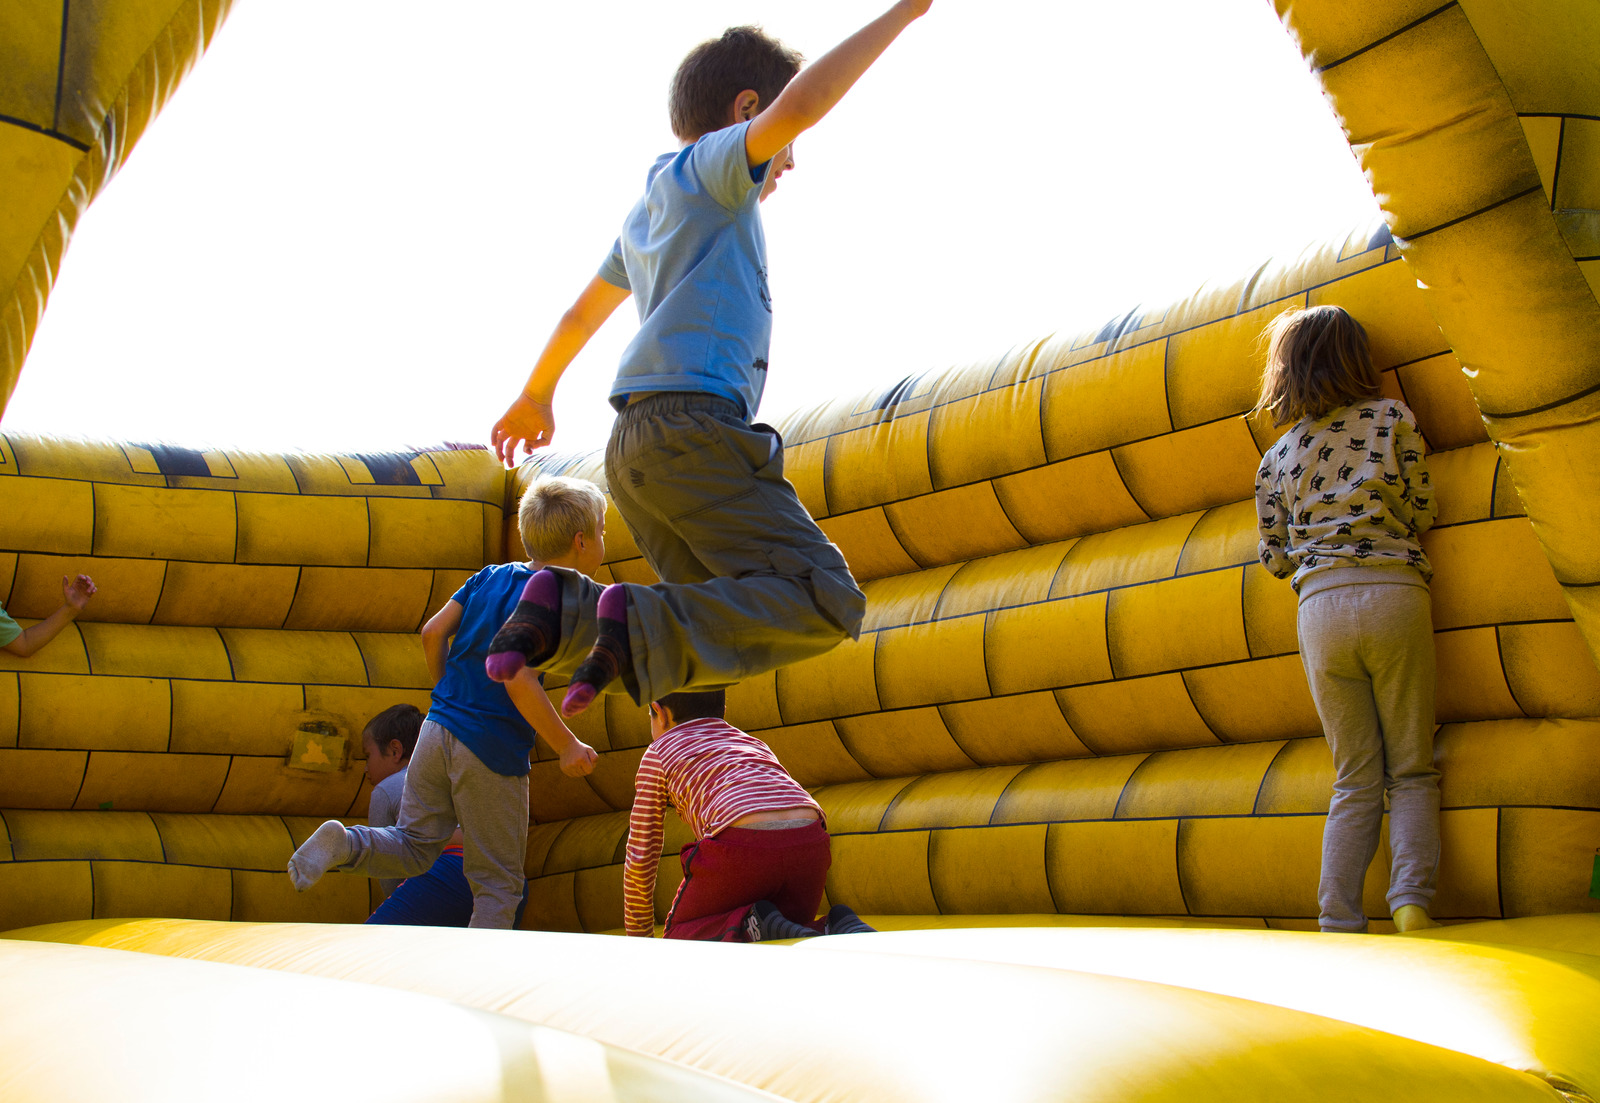 Kids on a jumping castle